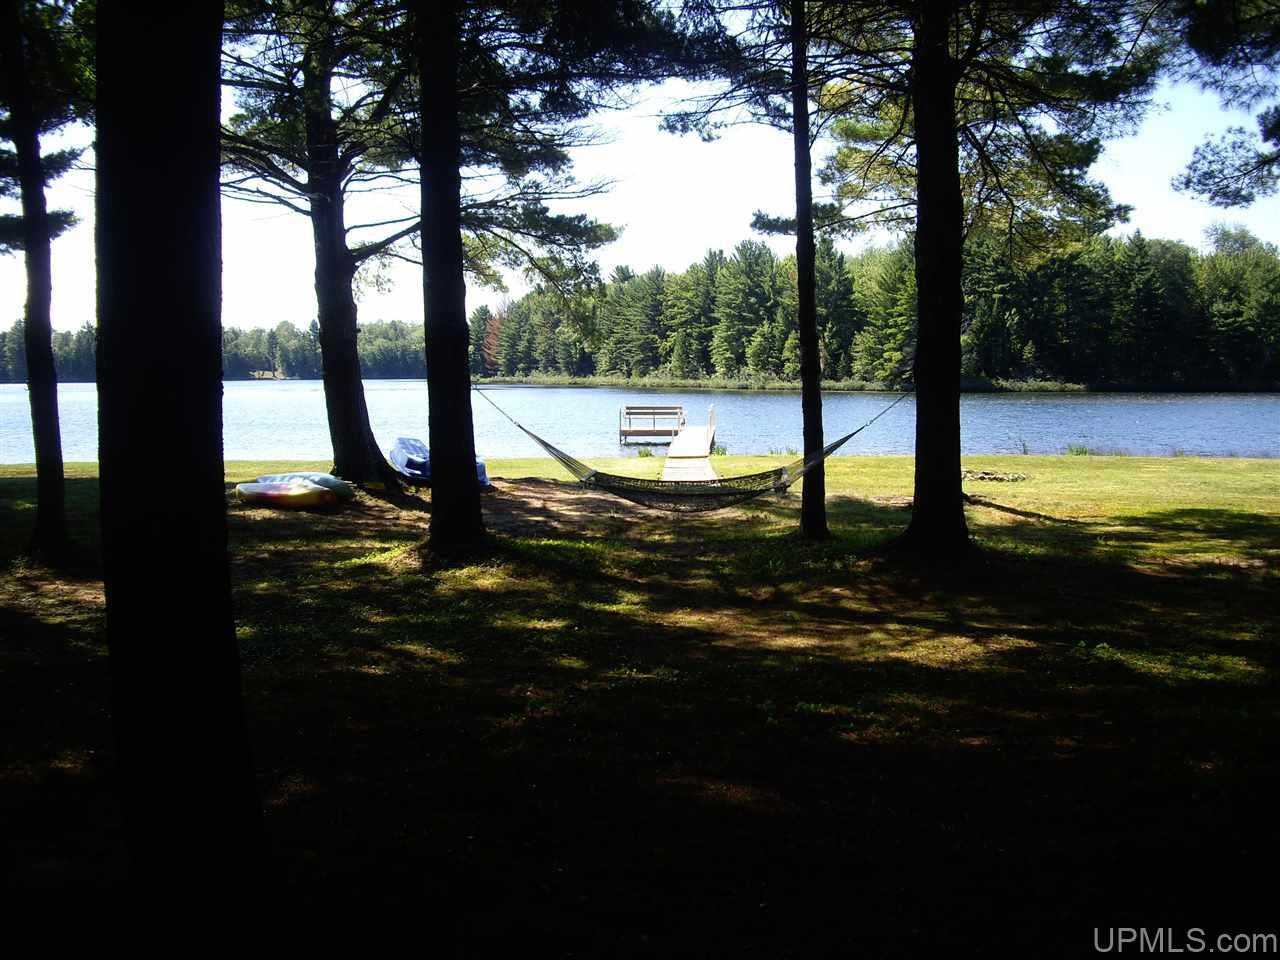 burt lake single guys Douglas lake is a 3,395 acre natural lake with a maximum depth of 80 feet located in northwestern cheboygan county, michigan it is the 28th largest lake in michigan based on surface acreage most of.